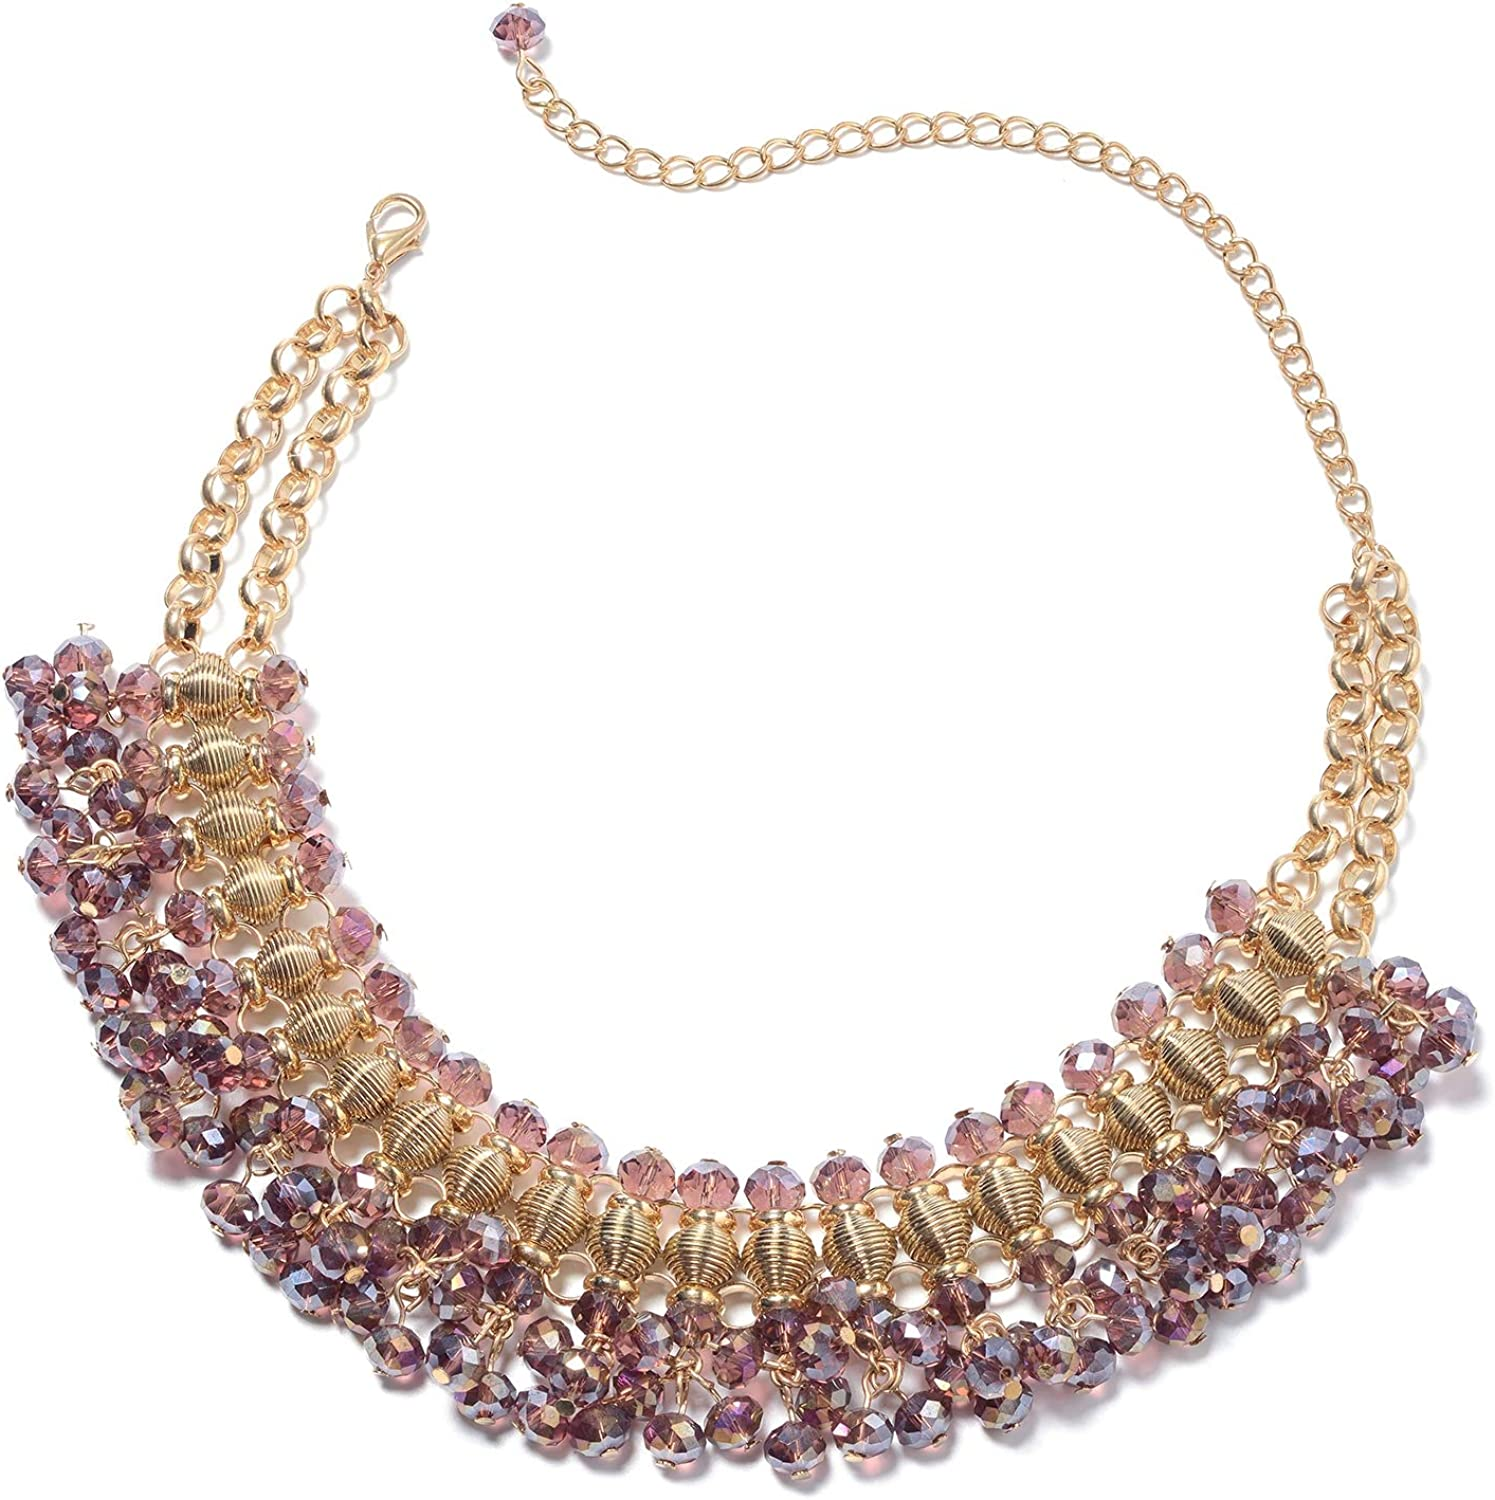 Shop LC Glass Gold Plated Bib Choker Statement Necklace for Women Delicate Jewelry Gifts (Blue/Purple/Champagne/Peacock)